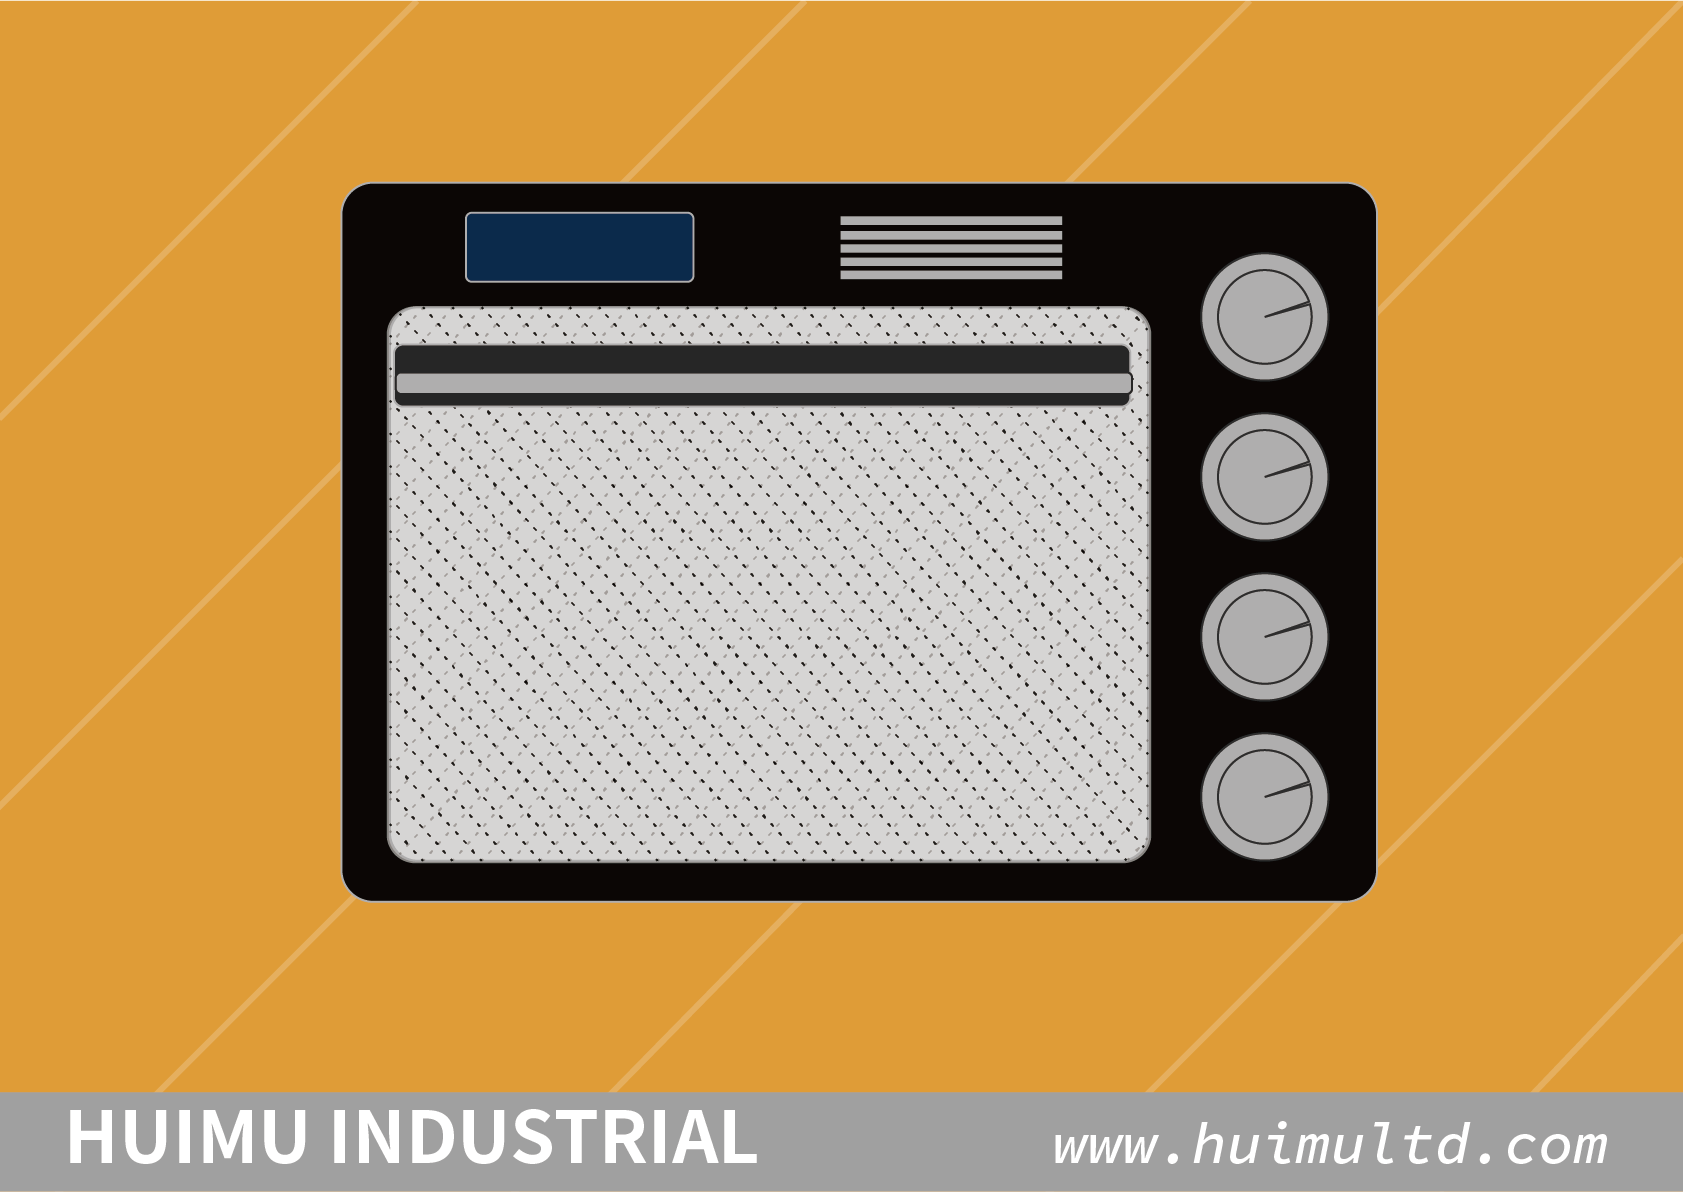 Electric Oven image